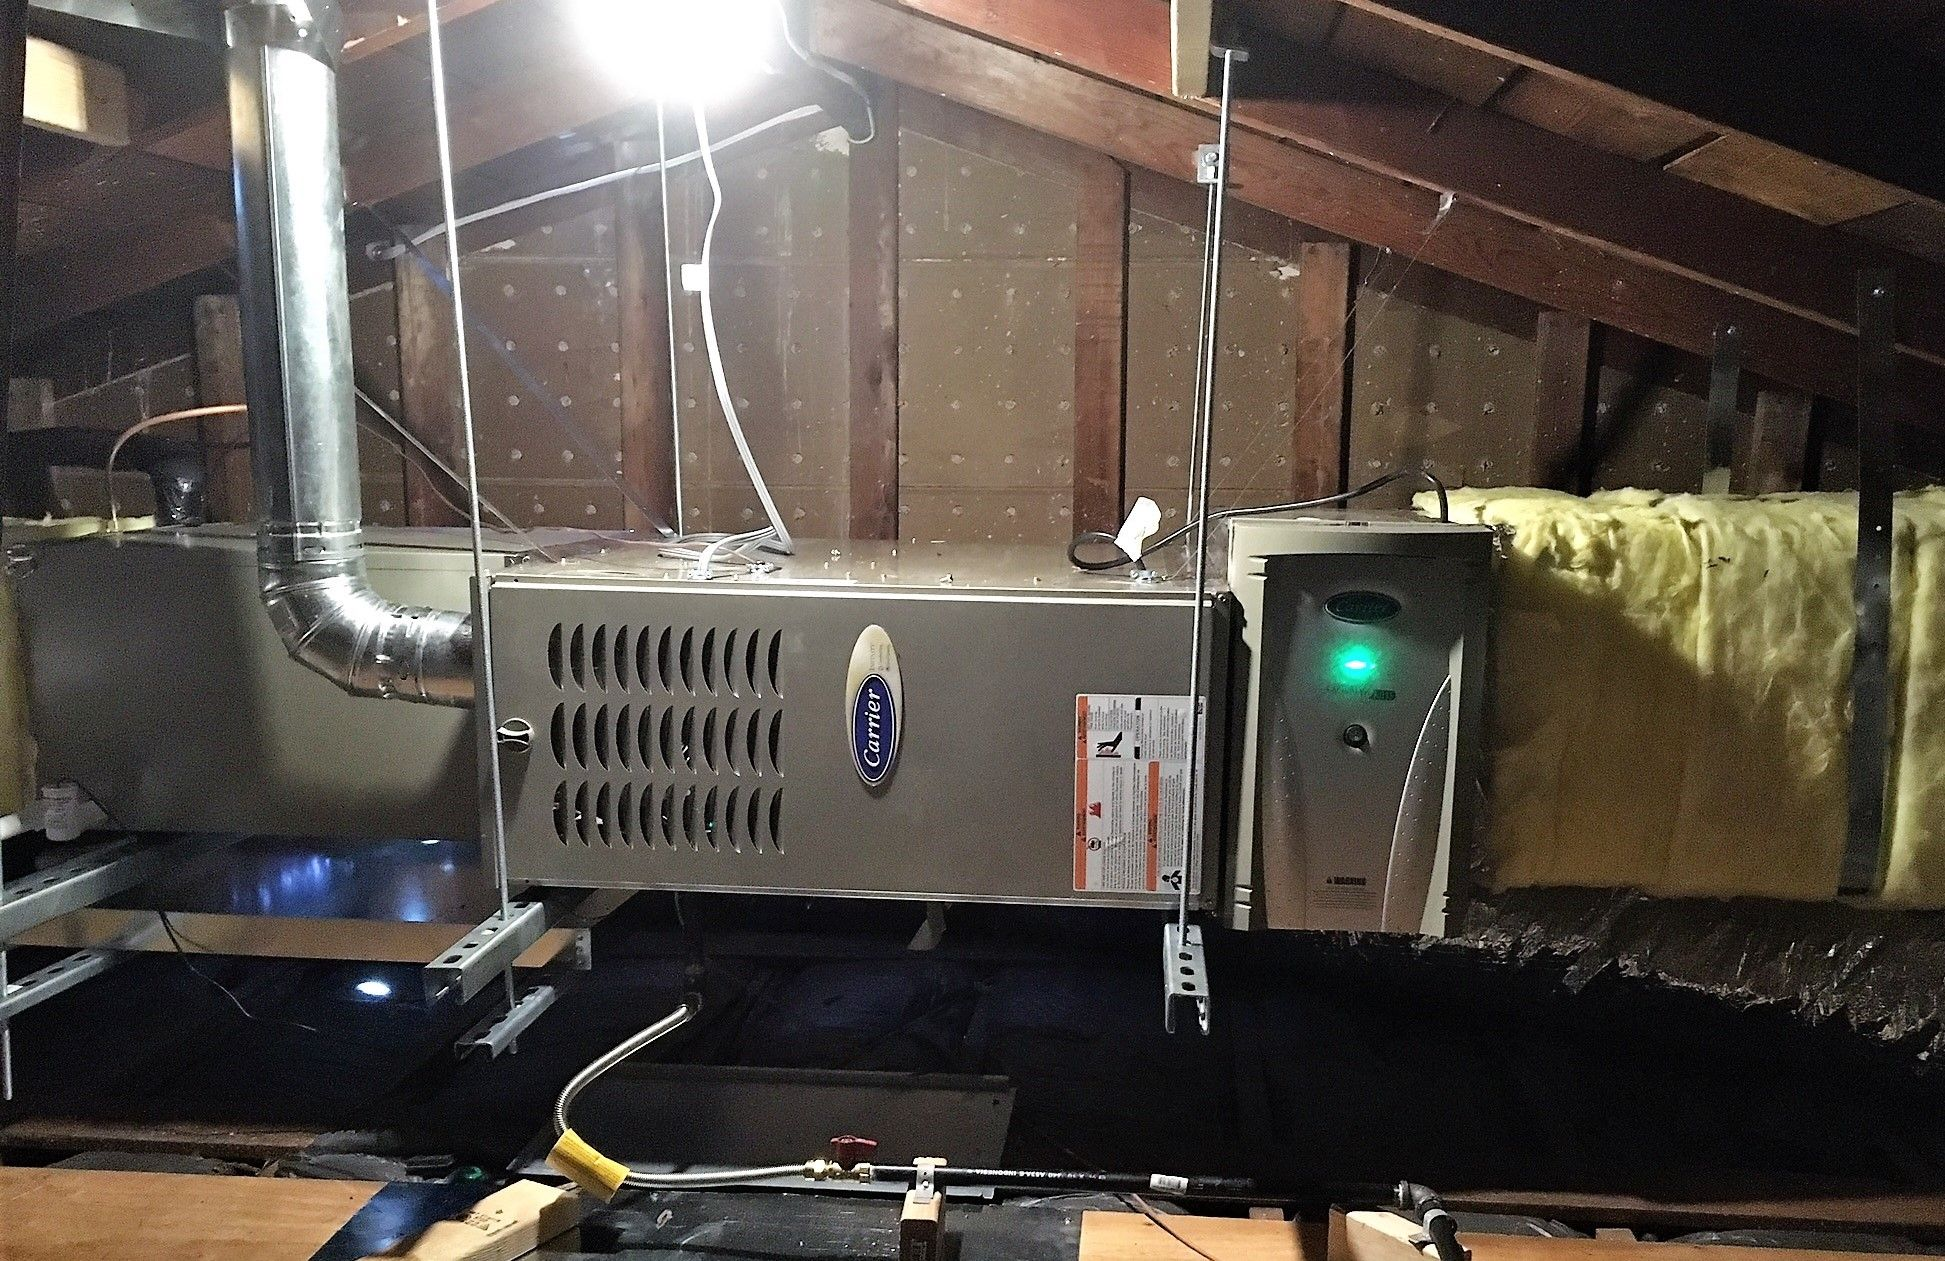 Horizontal installation of this Carrier Furnace. Furnace